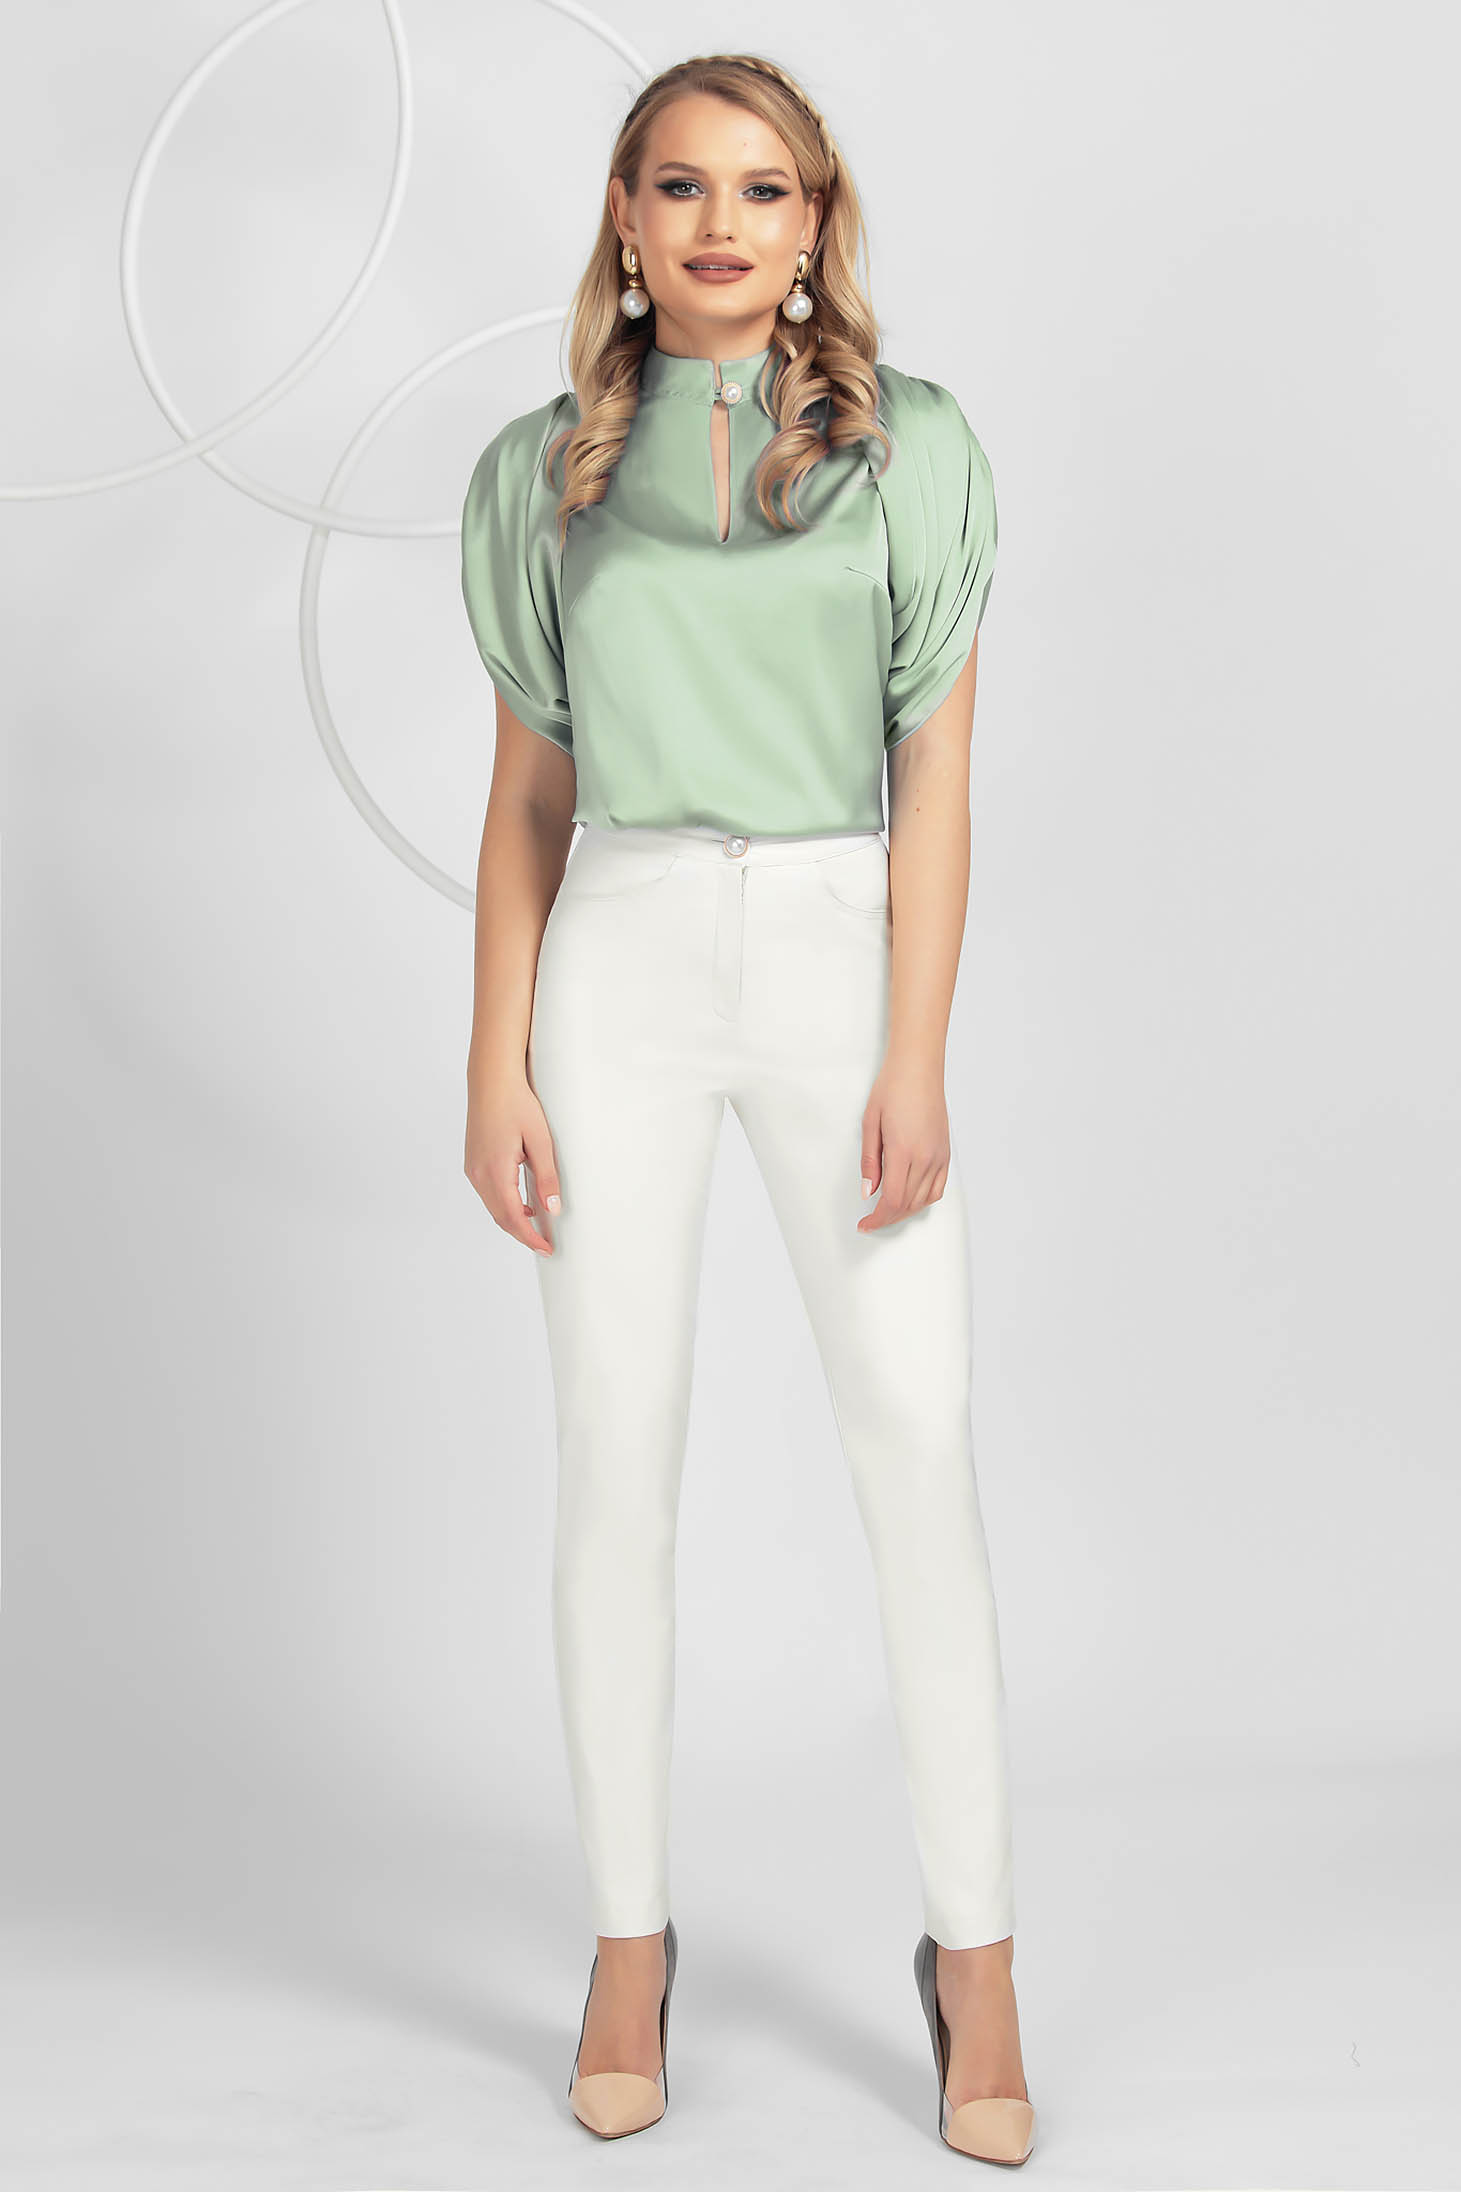 Ivory conical office trousers high waisted